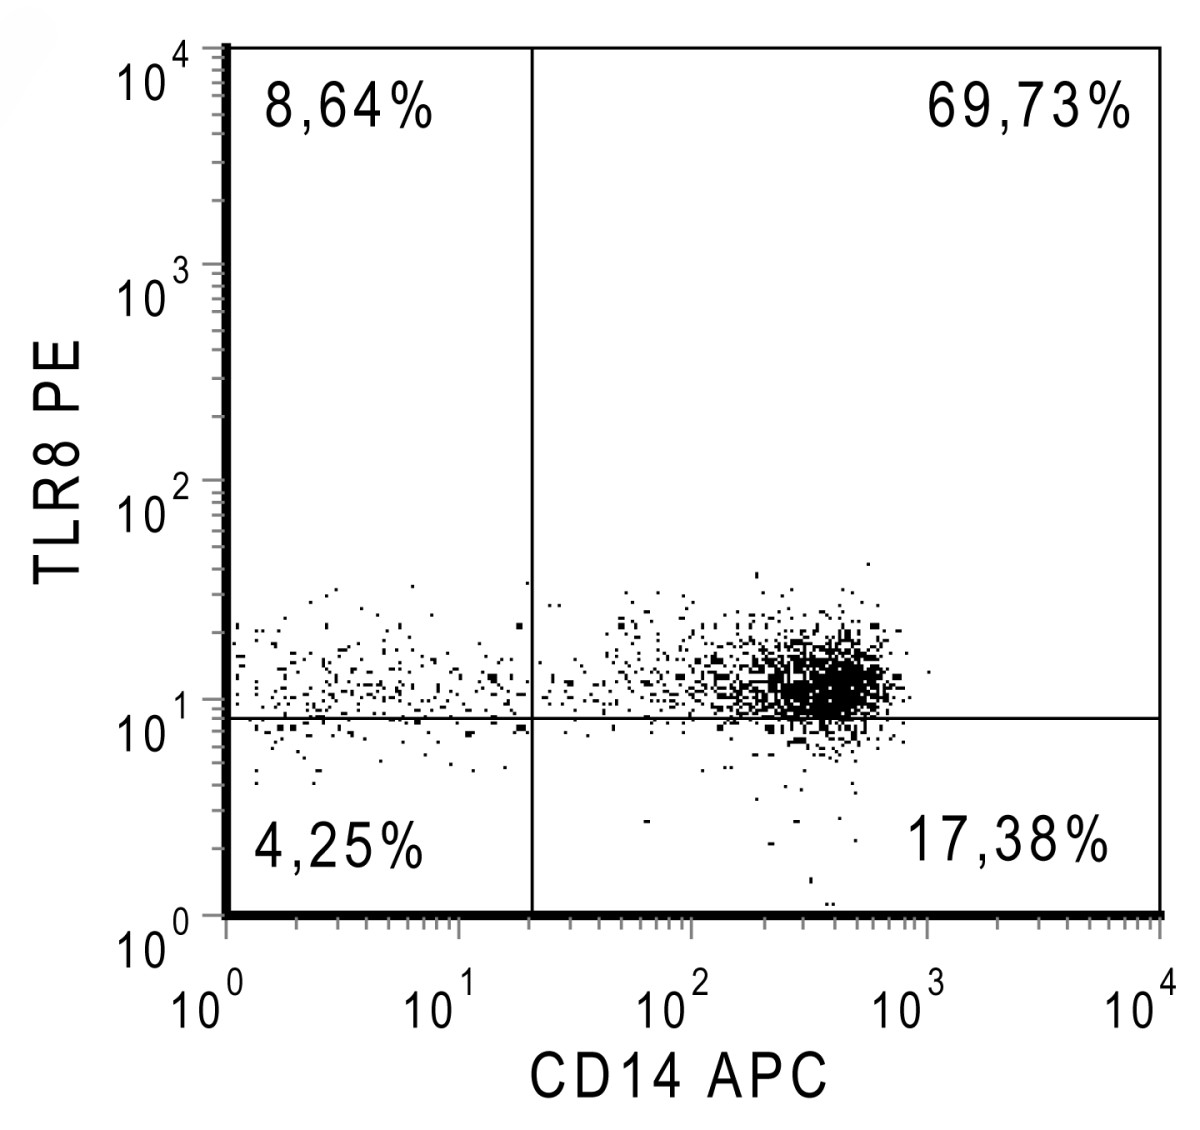 http://static-content.springer.com/image/art%3A10.1186%2F1465-9921-11-143/MediaObjects/12931_2010_Article_986_Fig1_HTML.jpg